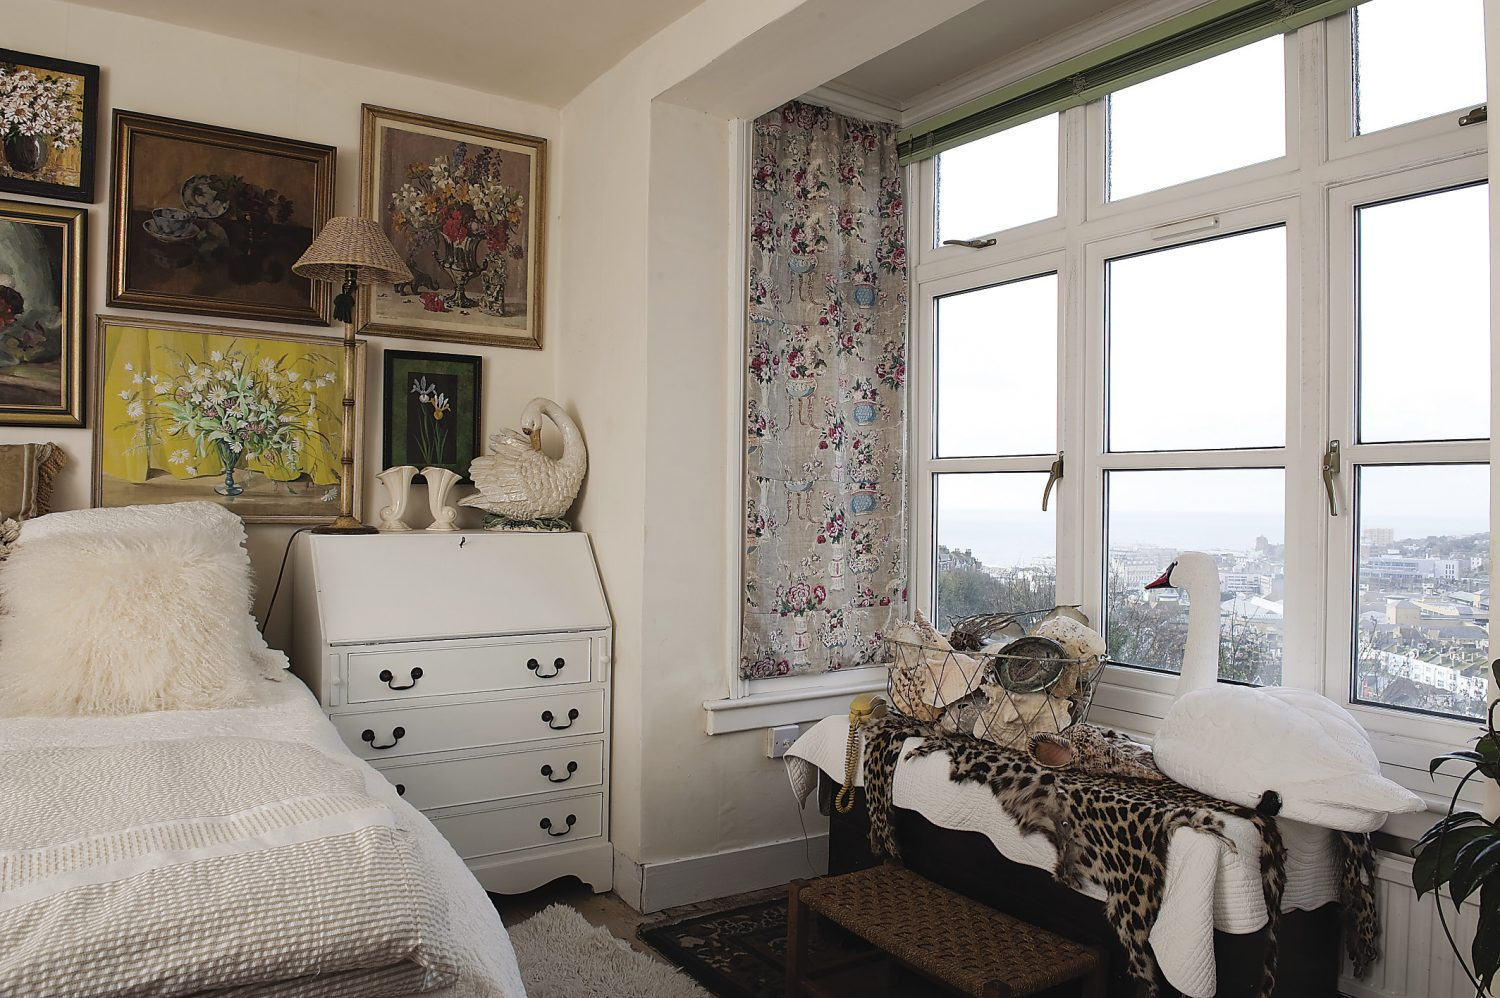 Helen's bedroom has great views of the sea and town. Helen's bed is dressed with a hand-made ivory quilt and masses of cushions, some of which have been sewn from the same linen that Helen had used to make window panels